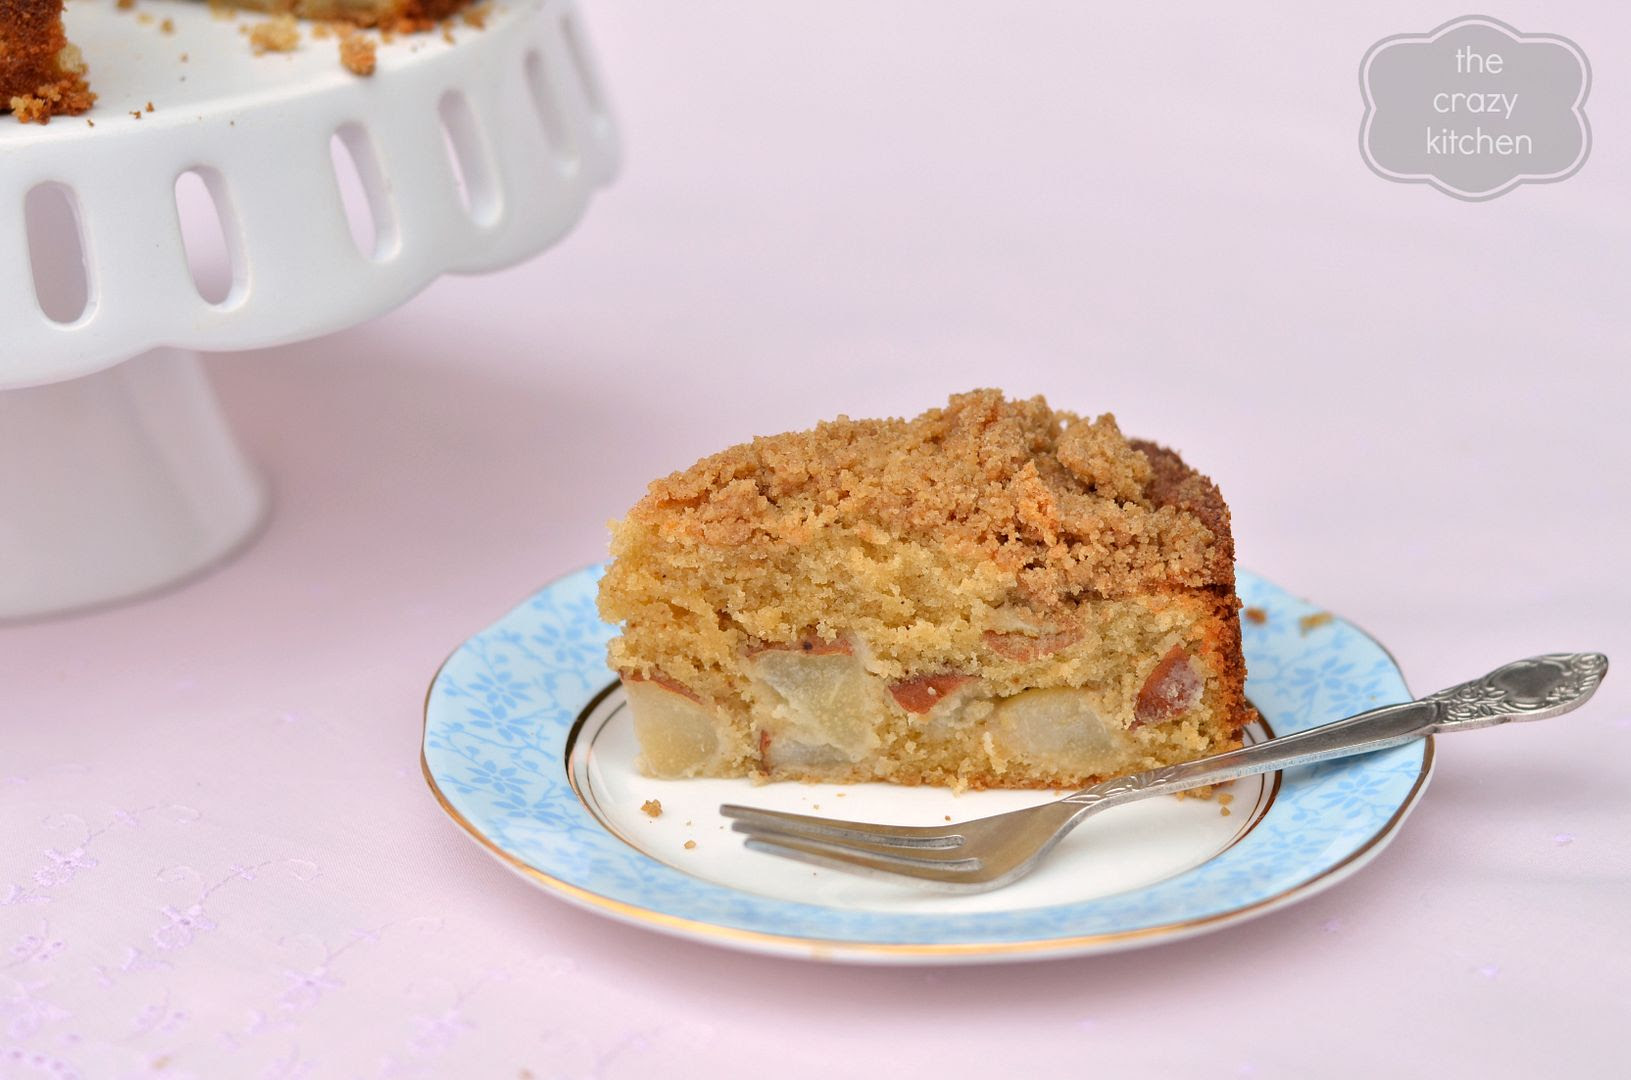 pear crumble cake photo pearcrumblecake3_zps418382a2.jpg